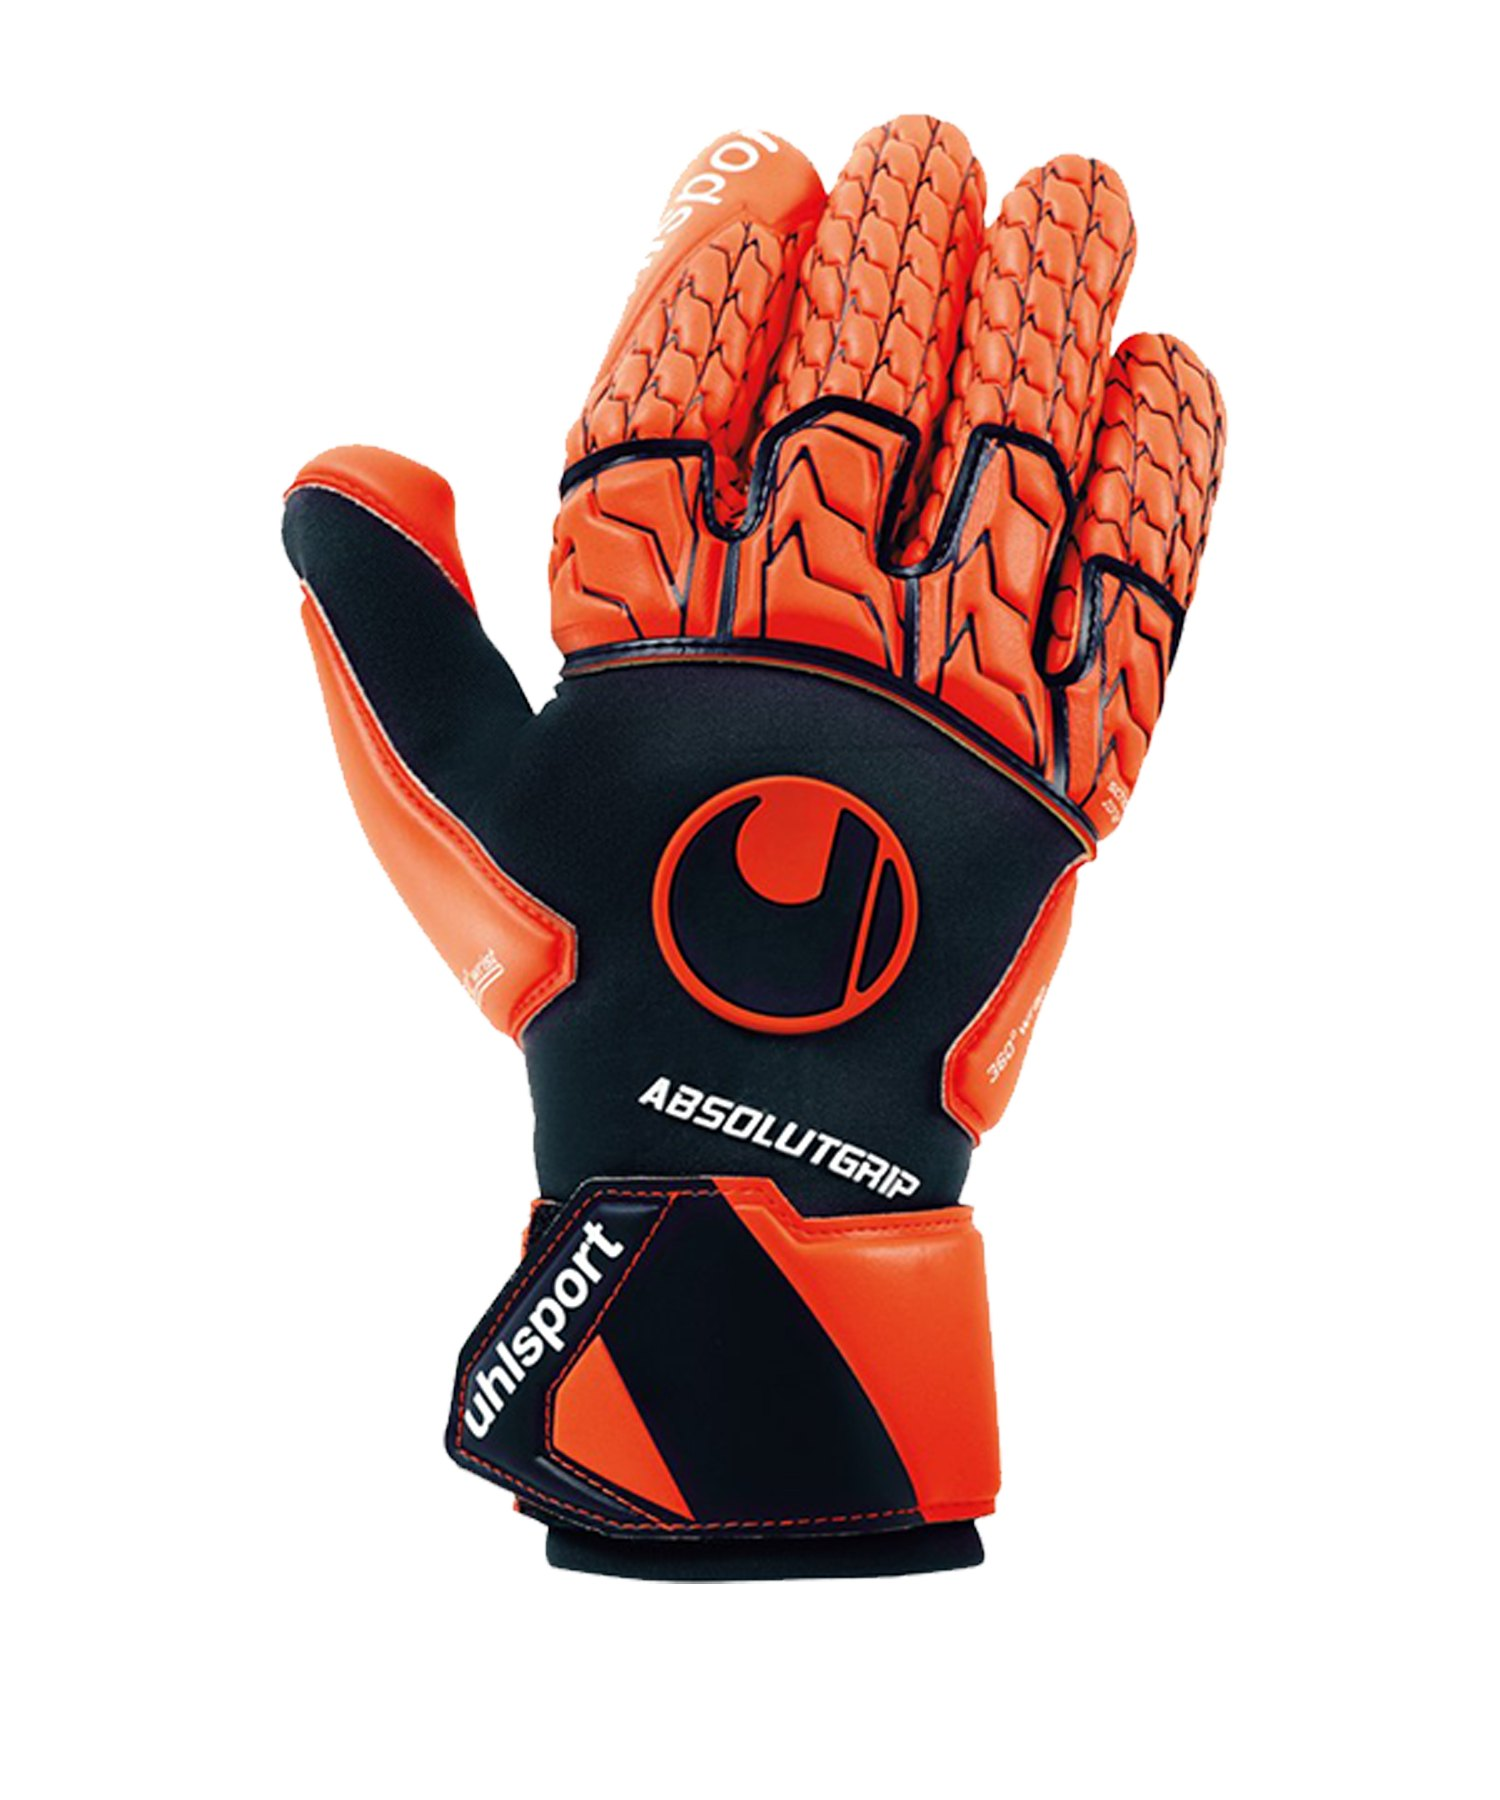 Uhlsport Next Level AG Reflex TW-Handschuh F01 - blau